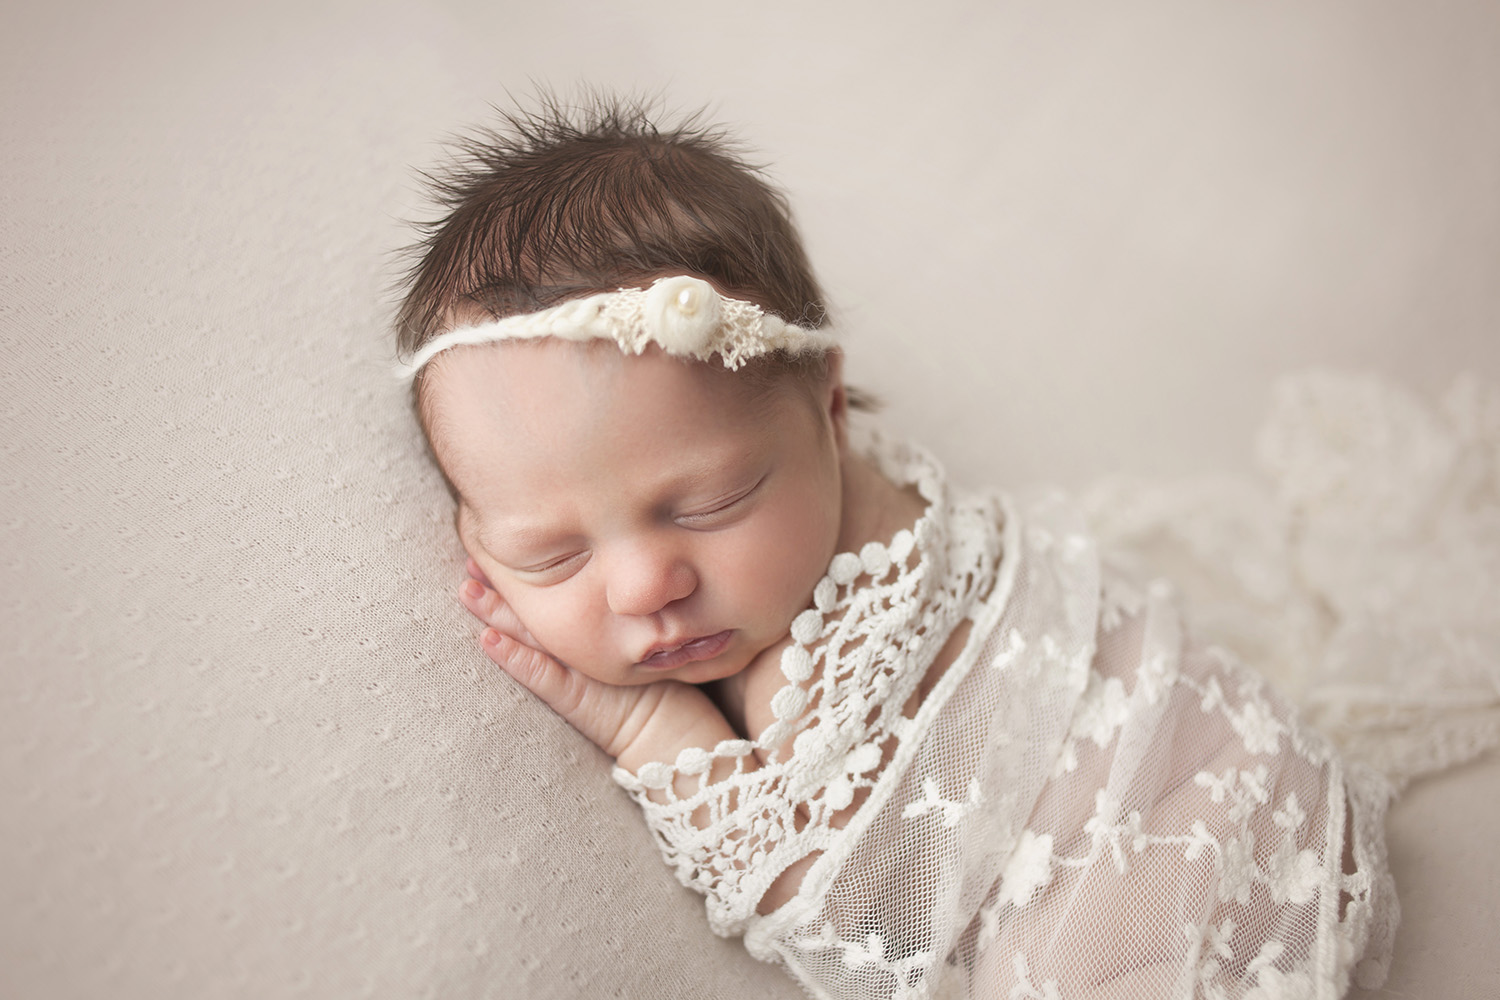 Chelsey-Hill-newborn-photography-breakout-22